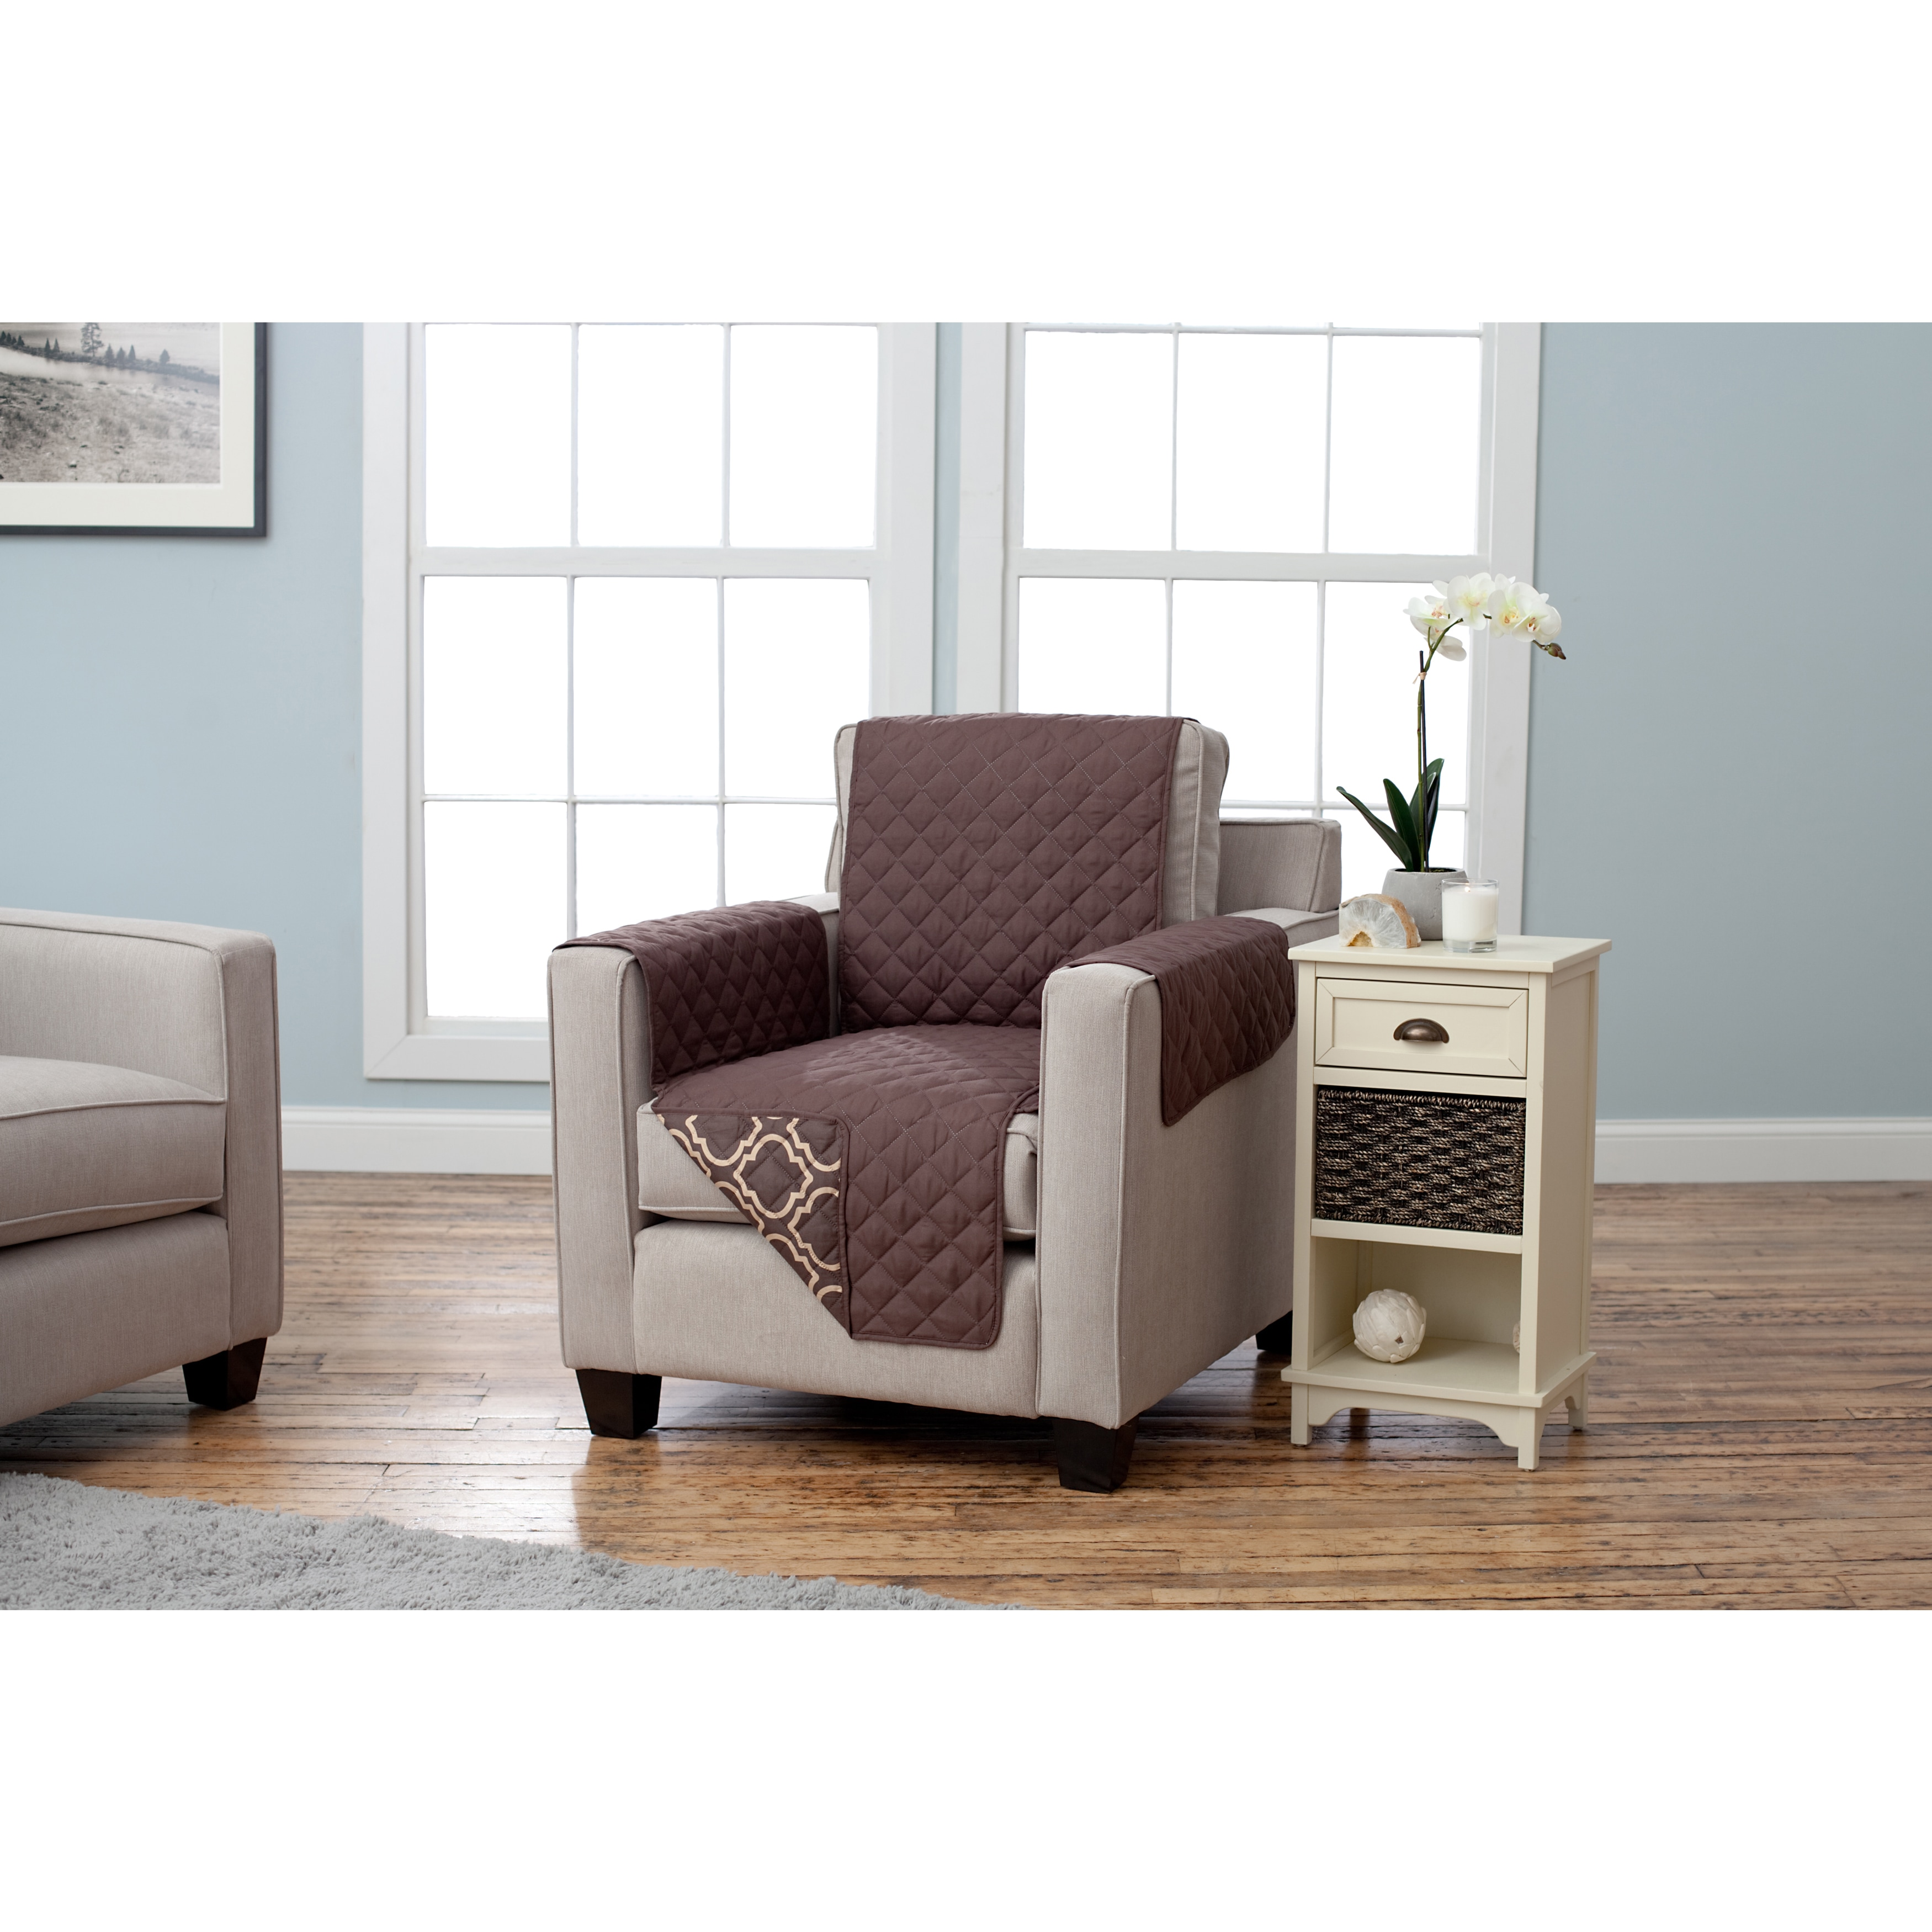 Home Fashion Designs Adalyn Collection Printed Reversible Chair Protector